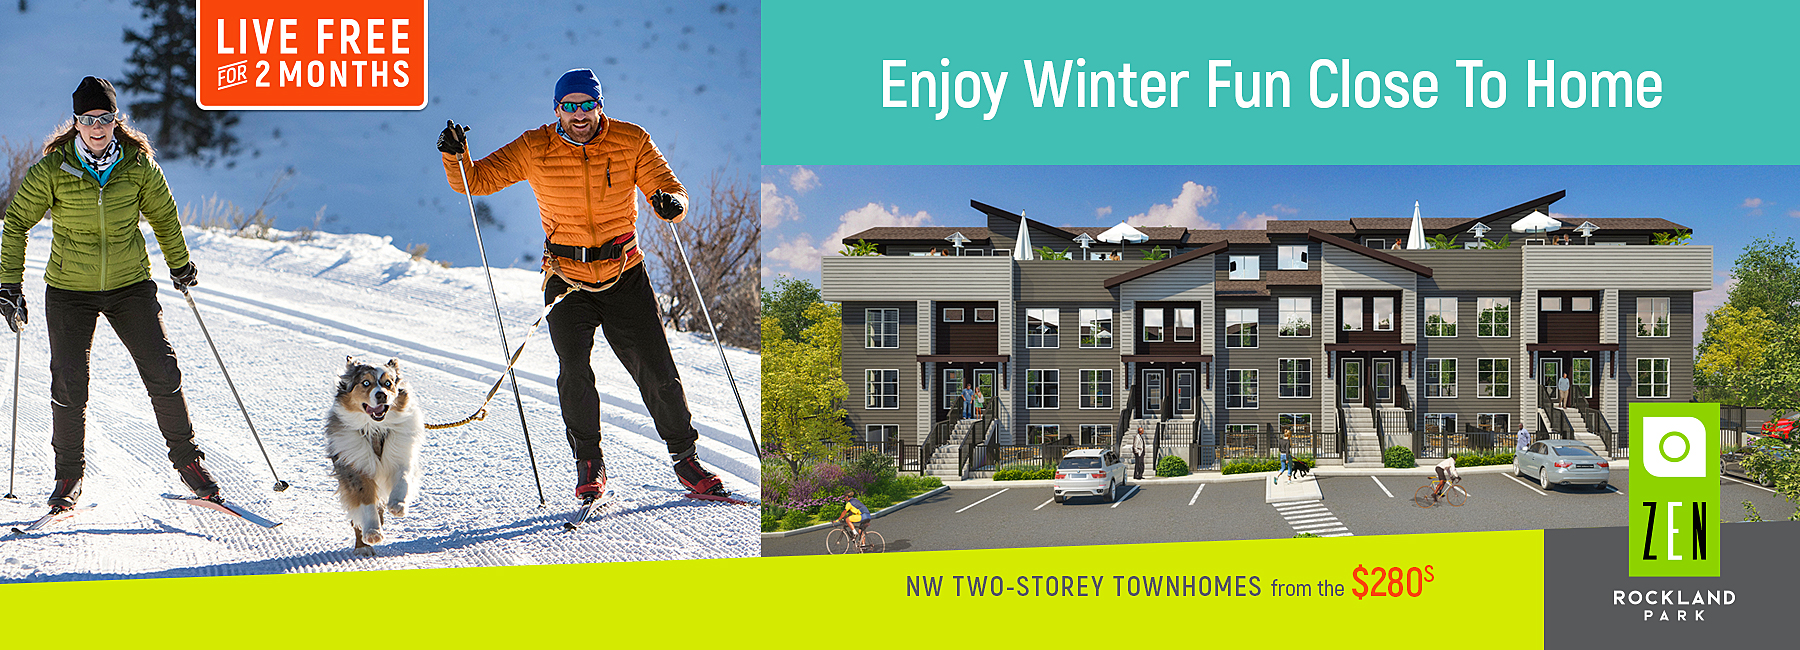 Enjoy winter fun close to home and live for free for 2 months!